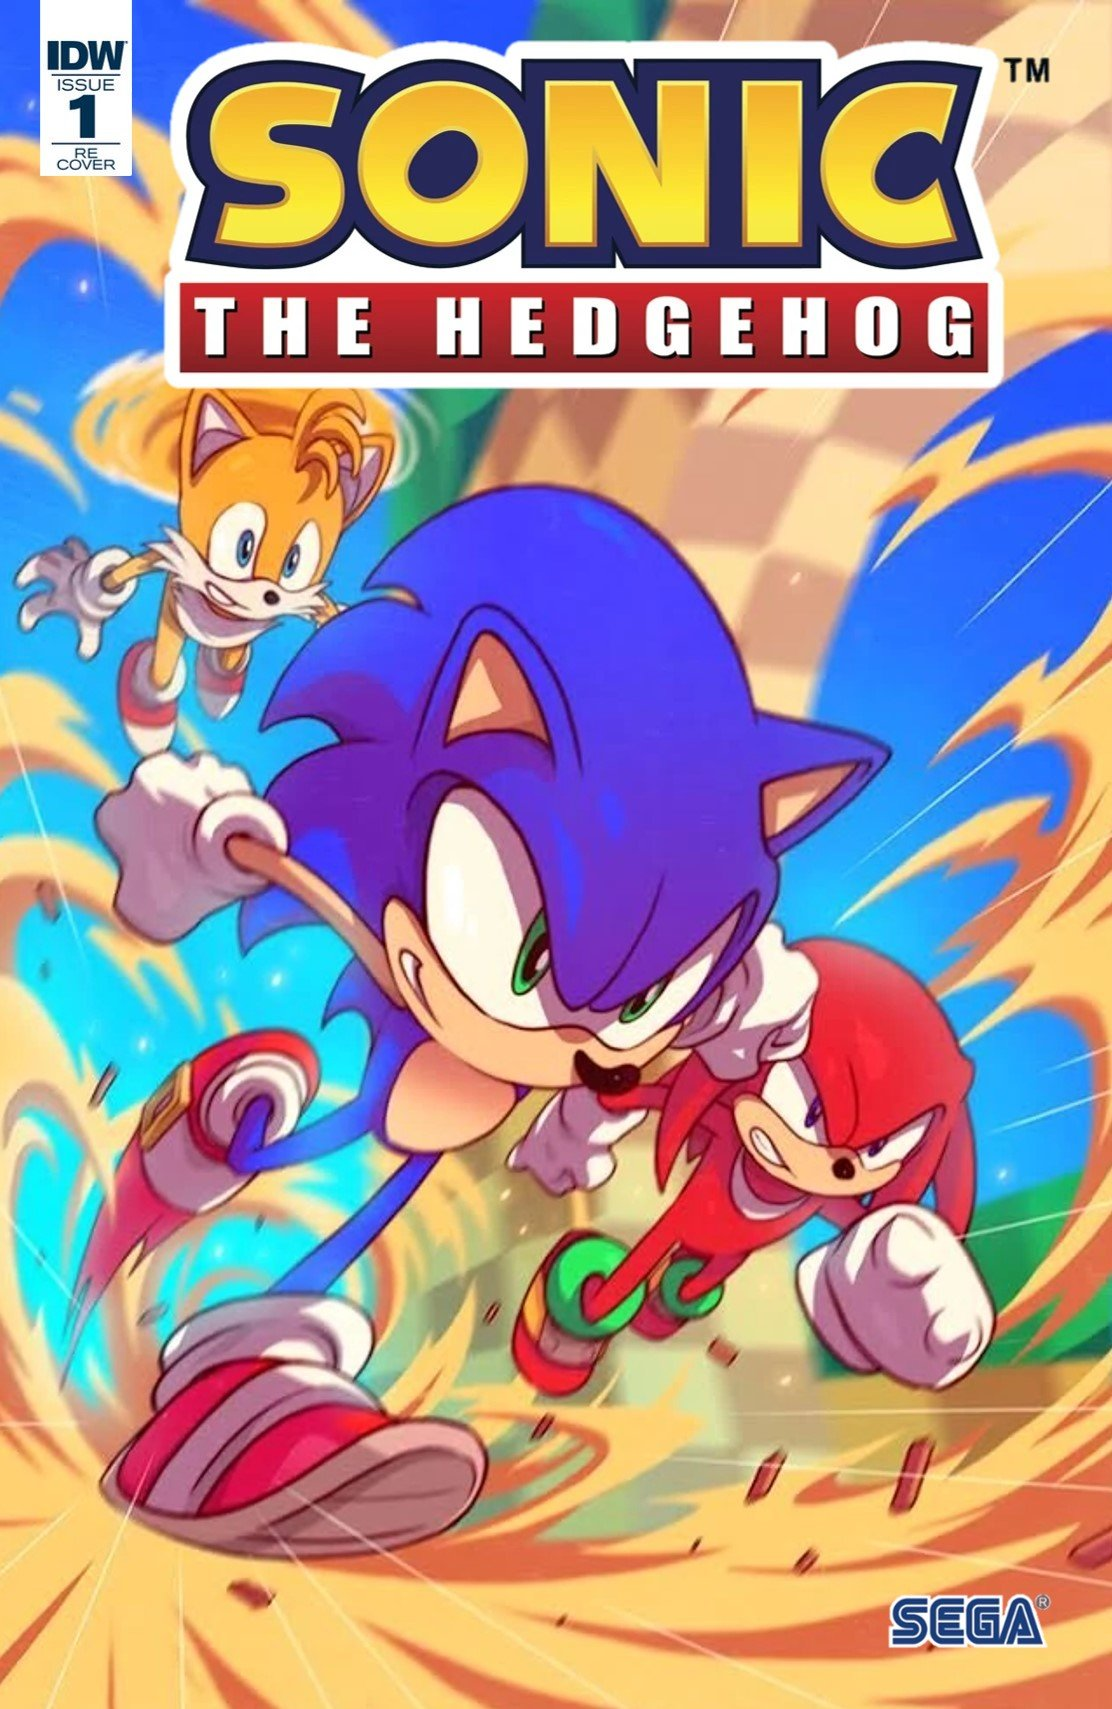 Sonic the Hedgehog 001 (April 2018) (Convention exclusive Superstar)